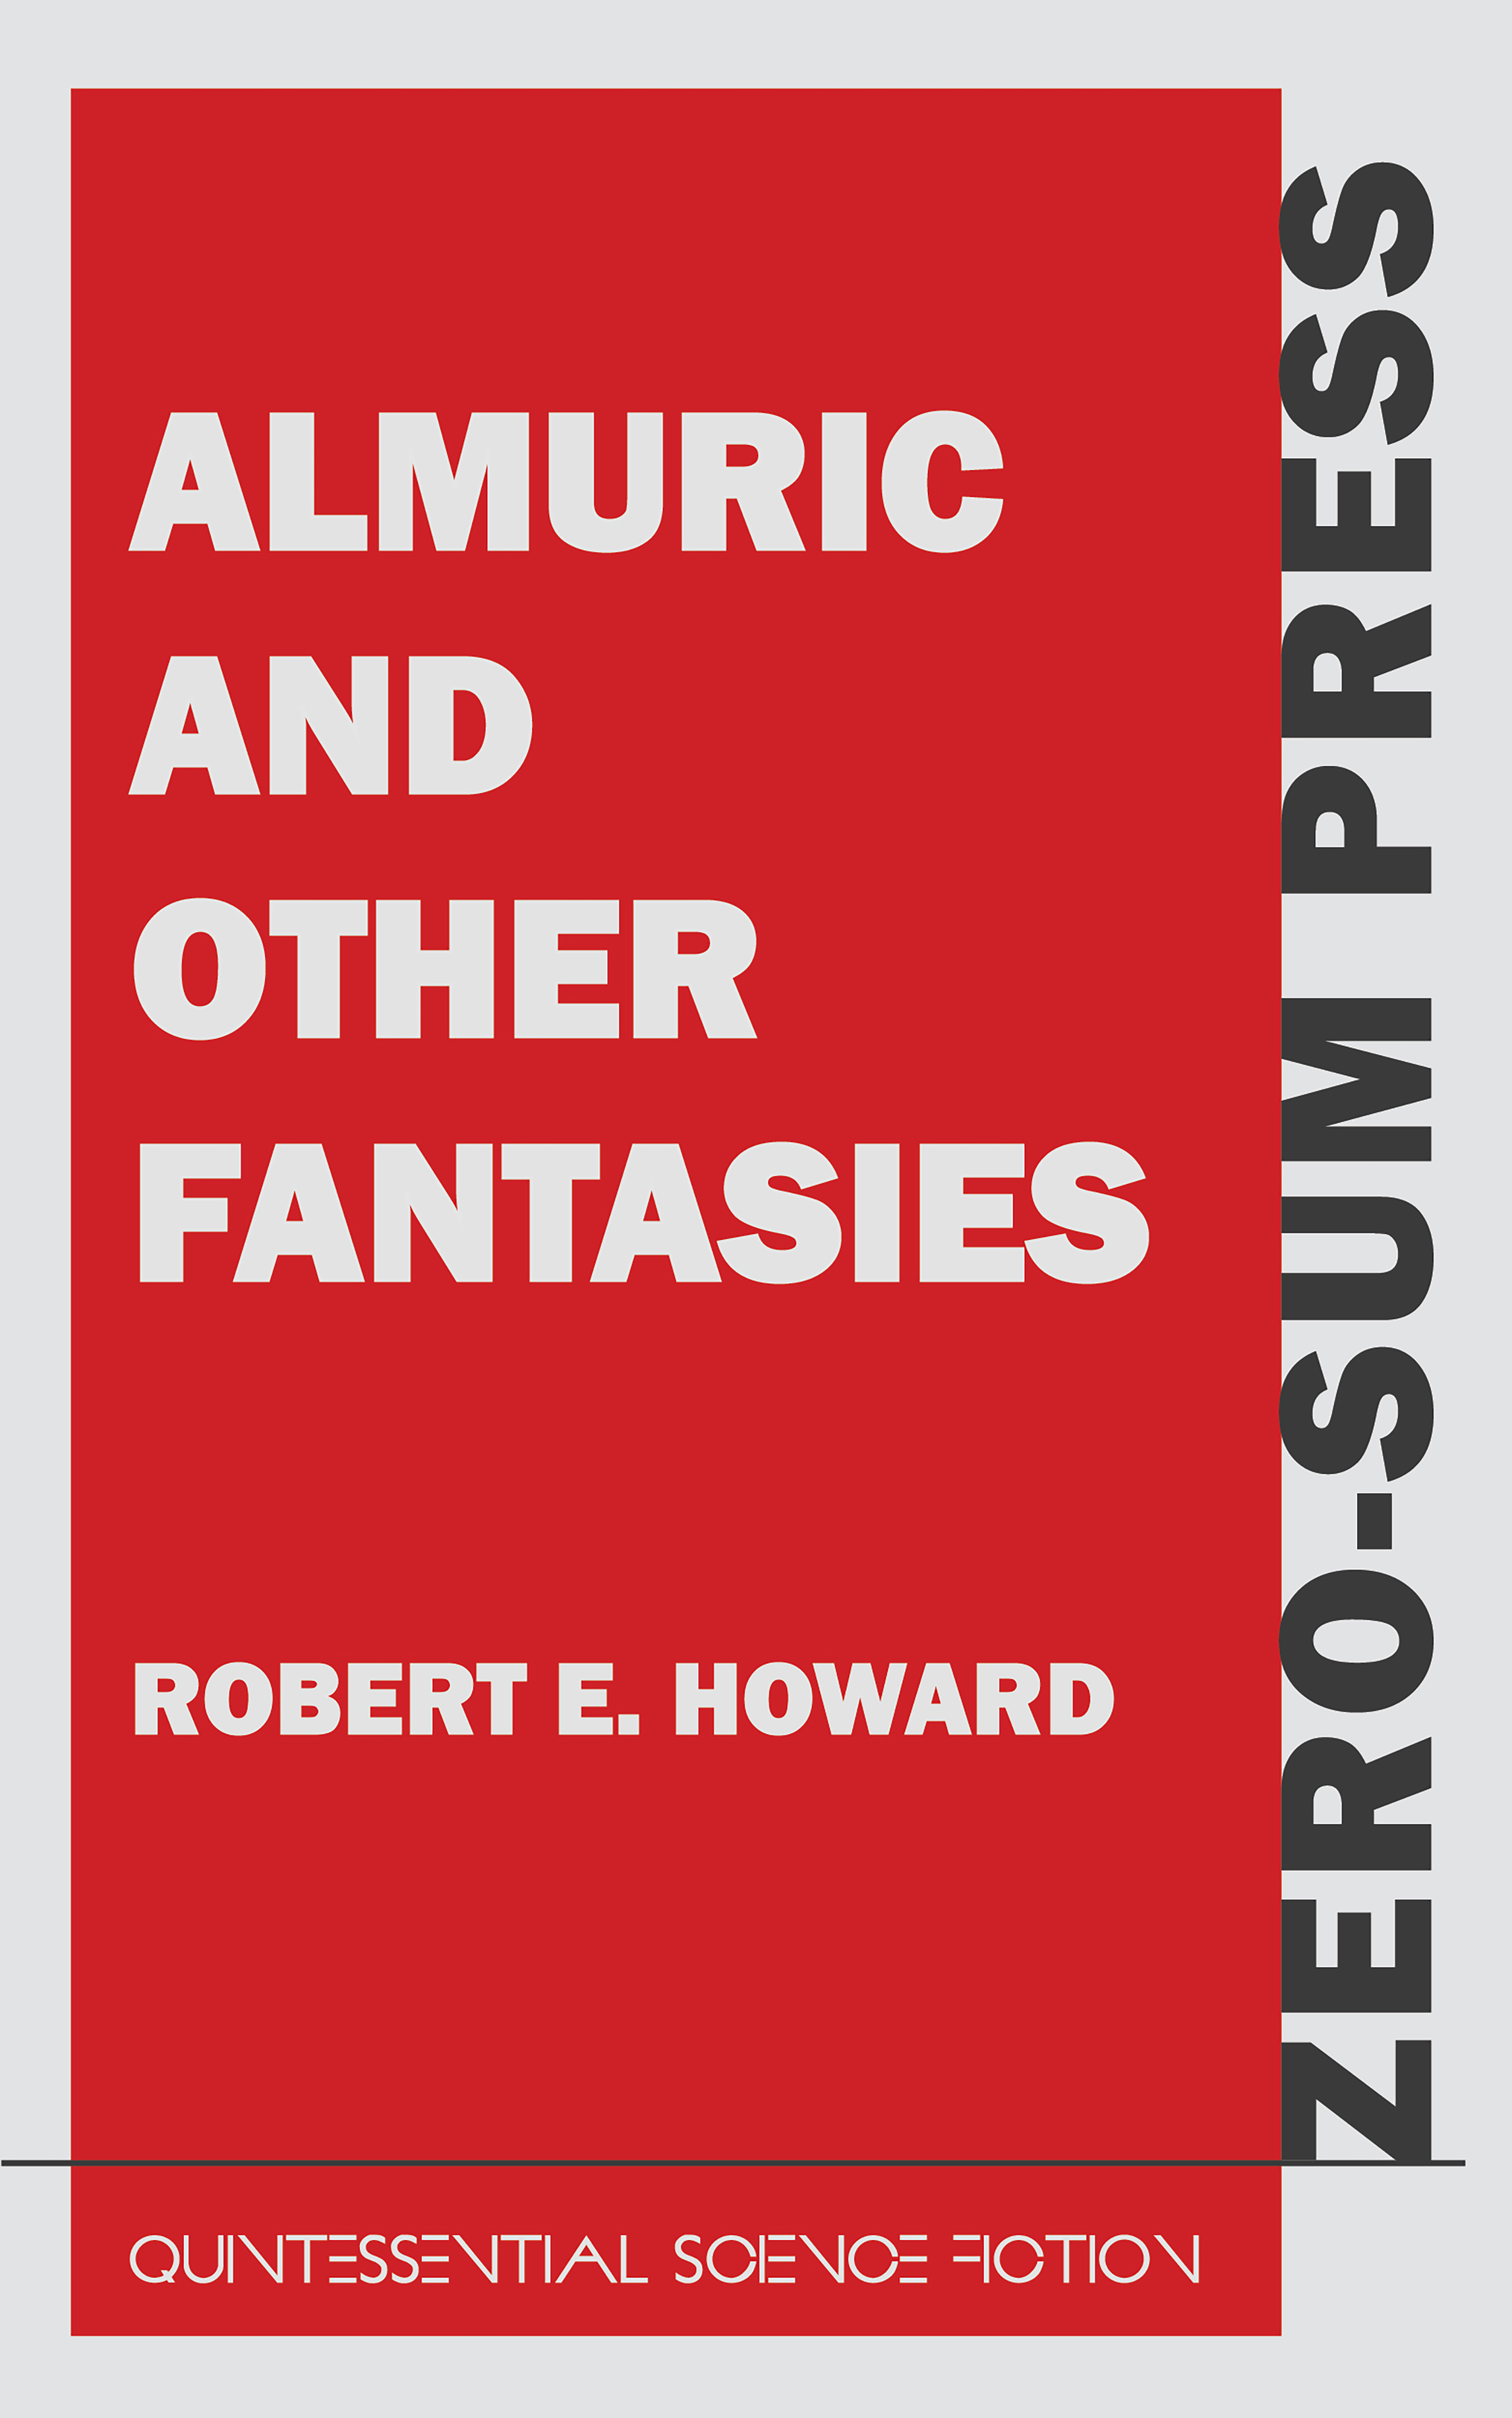 Robert E. Howard Almuric and Other Fantasies h p lovecraft robert e howard a means to freedom the letters of h p lovecraft and robert e howard volume 1